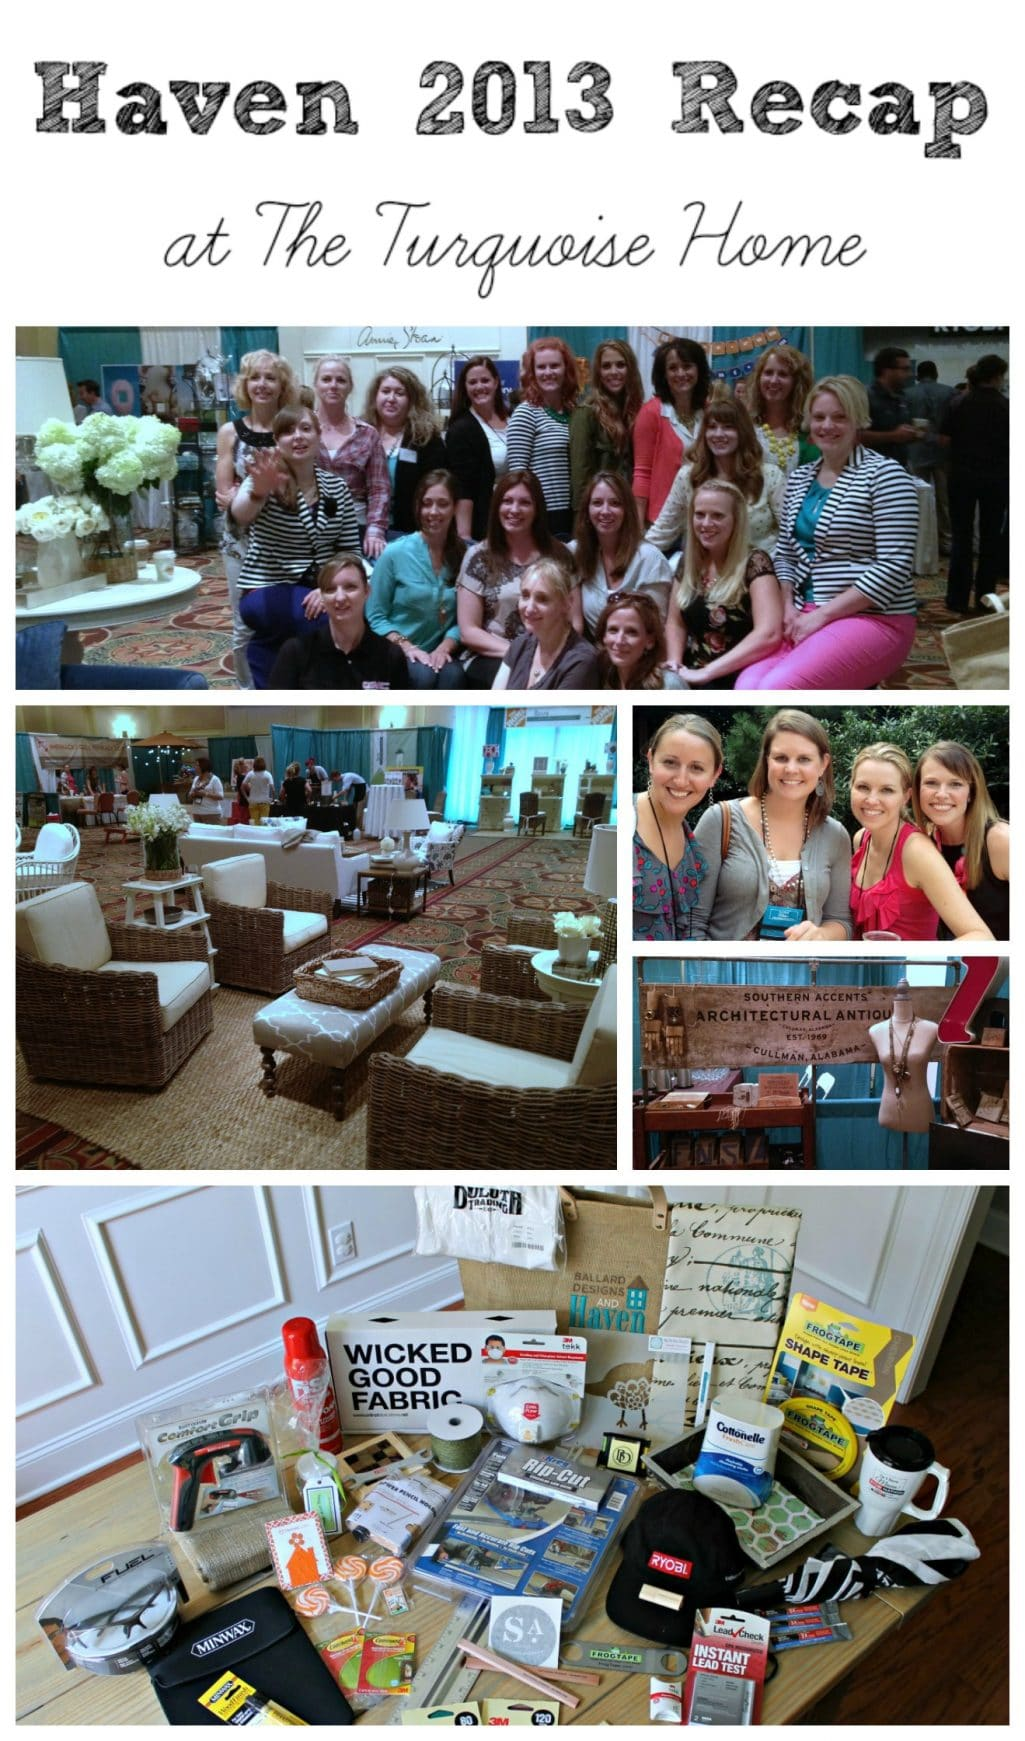 Haven 2013 Recap by The Turquoise Home